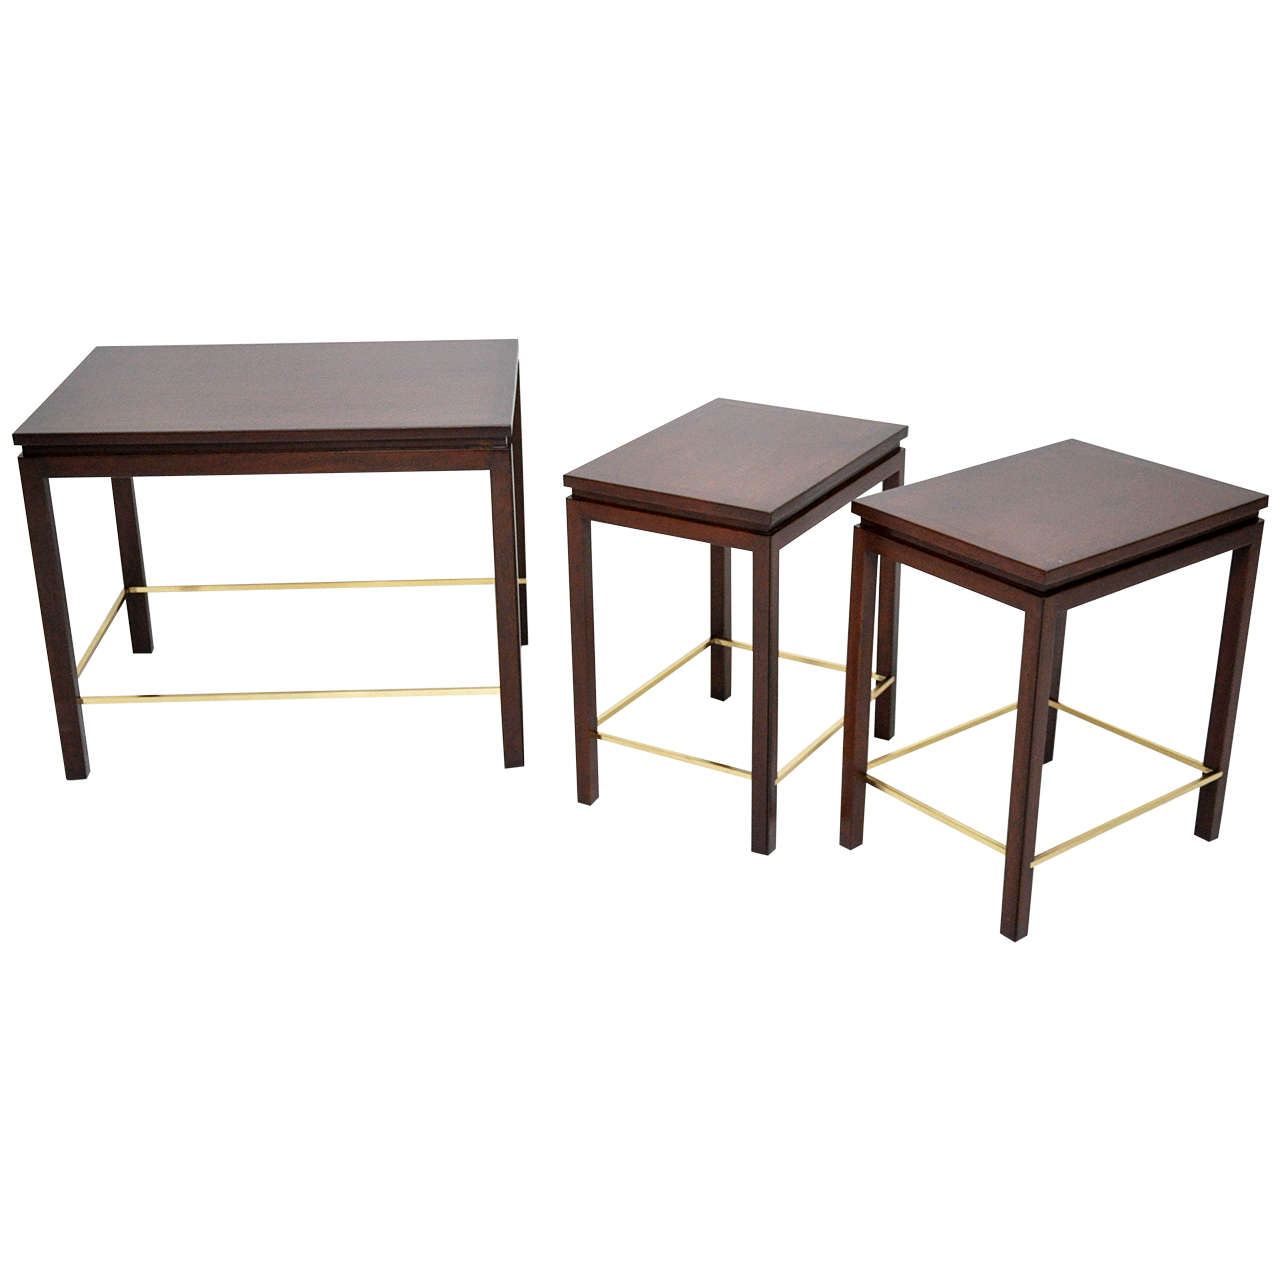 Dunbar Nesting Tables by Edward Wormley